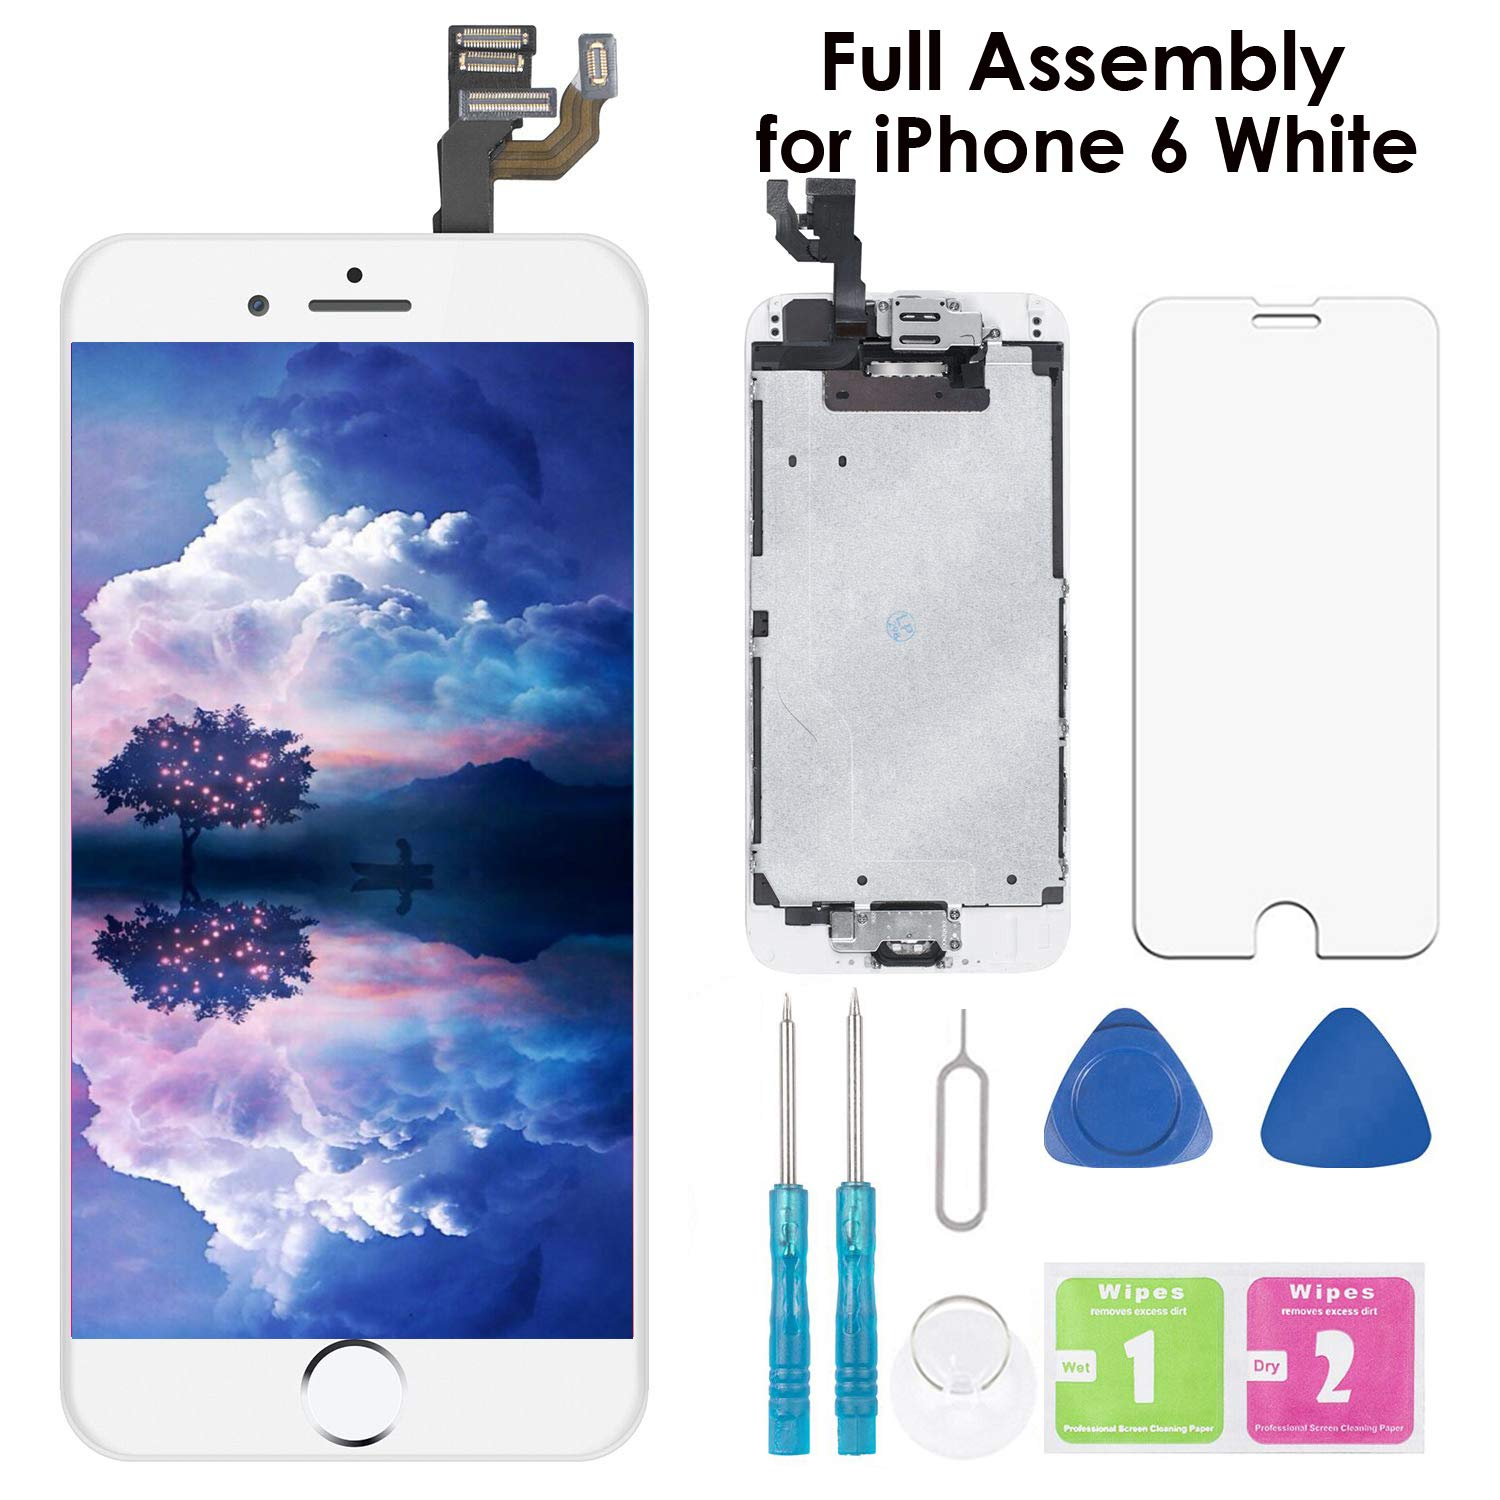 Screen Replacement for iPhone 6 White 4.7 Inch LCD Display Full Assembly Touch Digitizer A1586 A1549 A1589 with Home Button, Front Camera, Proximity Sensor, Earpiece and Screen Protector